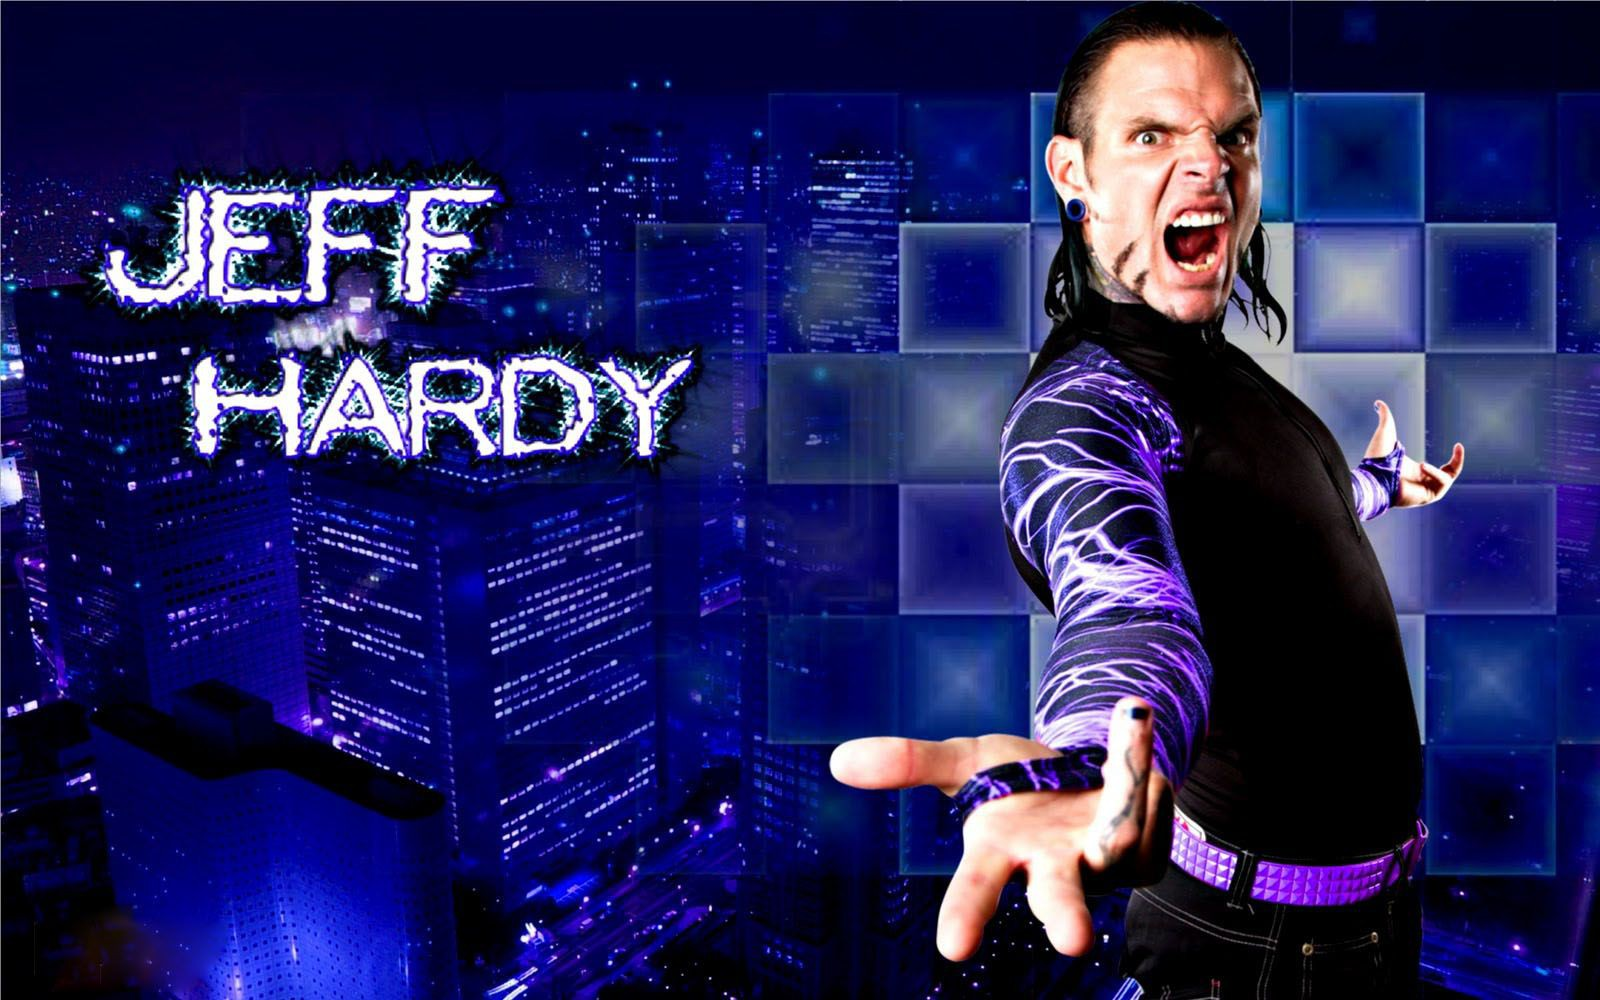 jeff hardy cool wallpapers